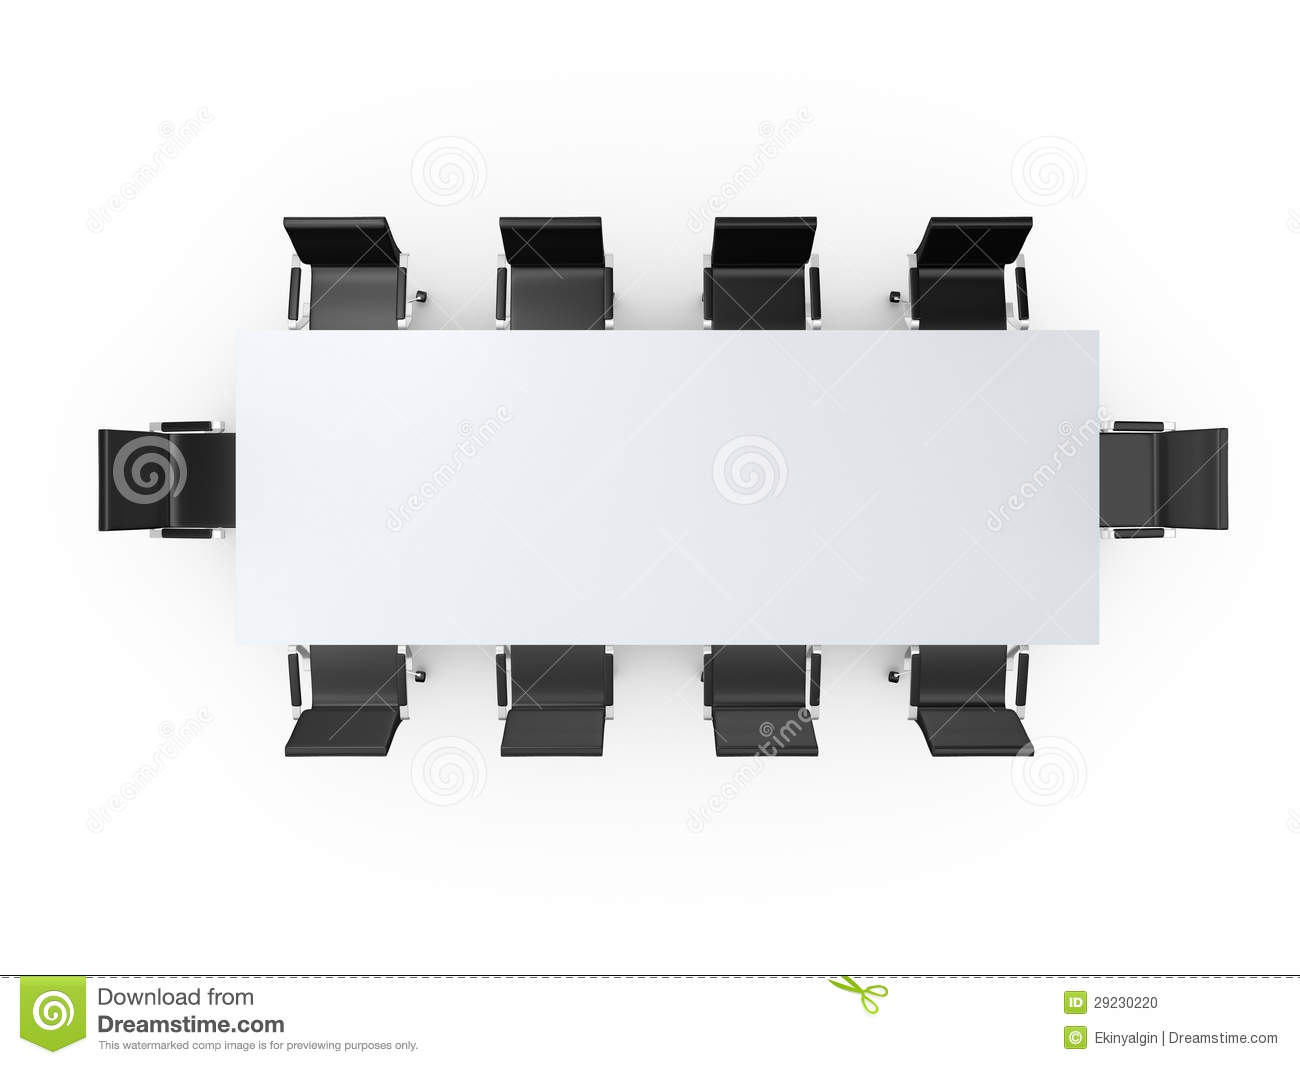 17 Tables And Chairs Vector Plan View Images Free Floor  : conference table and chair top view150707 from www.newdesignfile.com size 1300 x 1065 jpeg 59kB